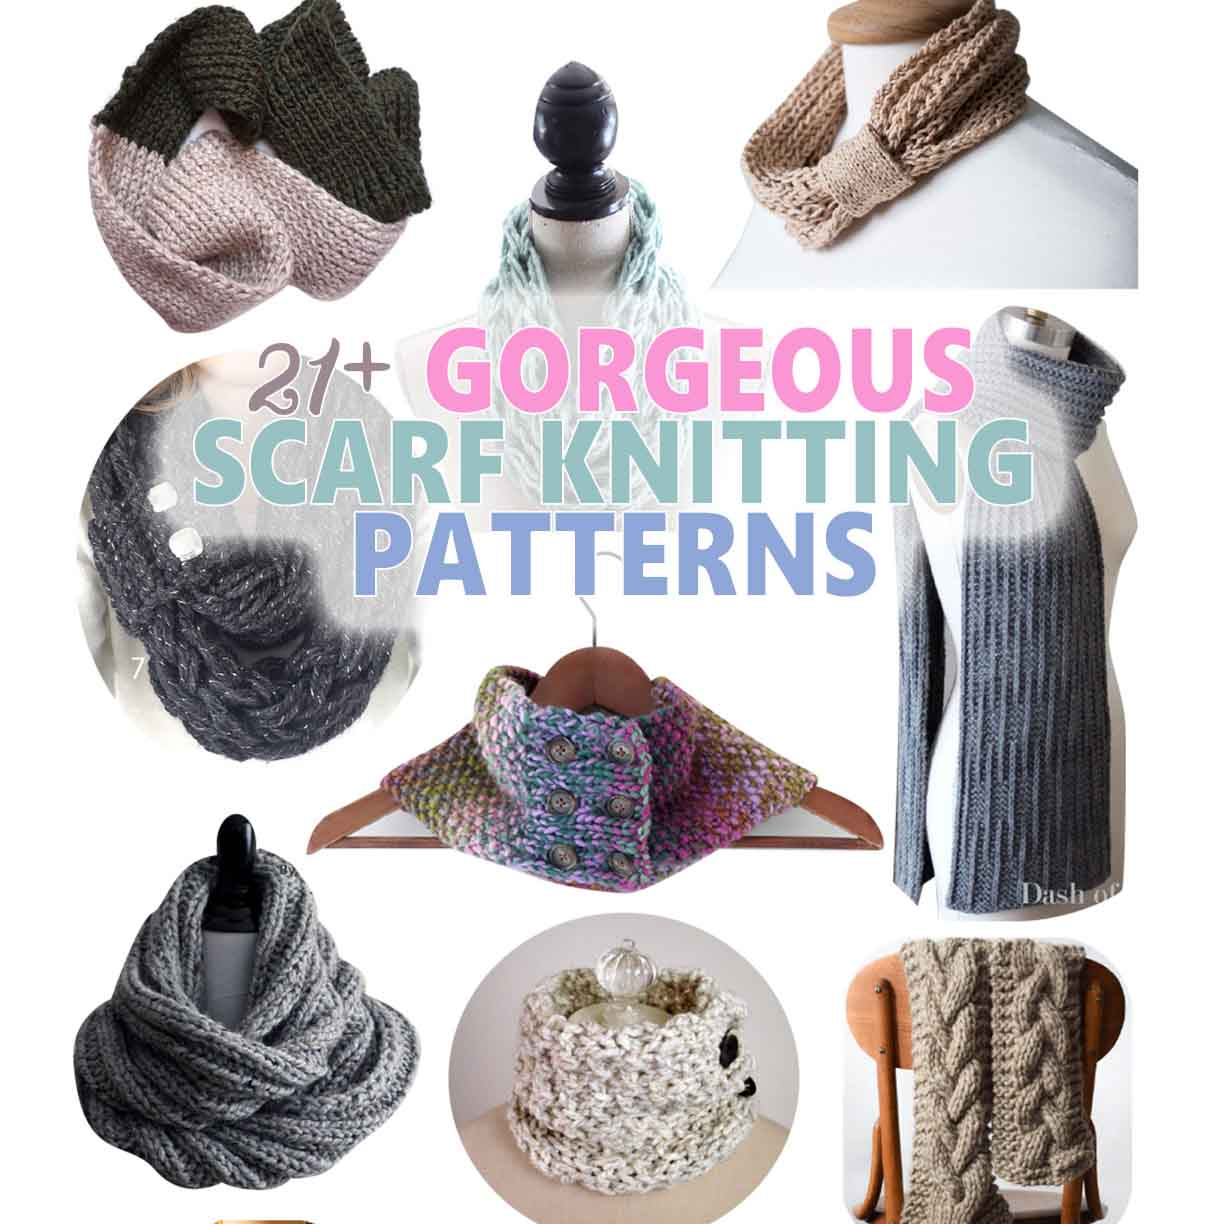 Collage of images showing some of the best scarf knitting patterns around